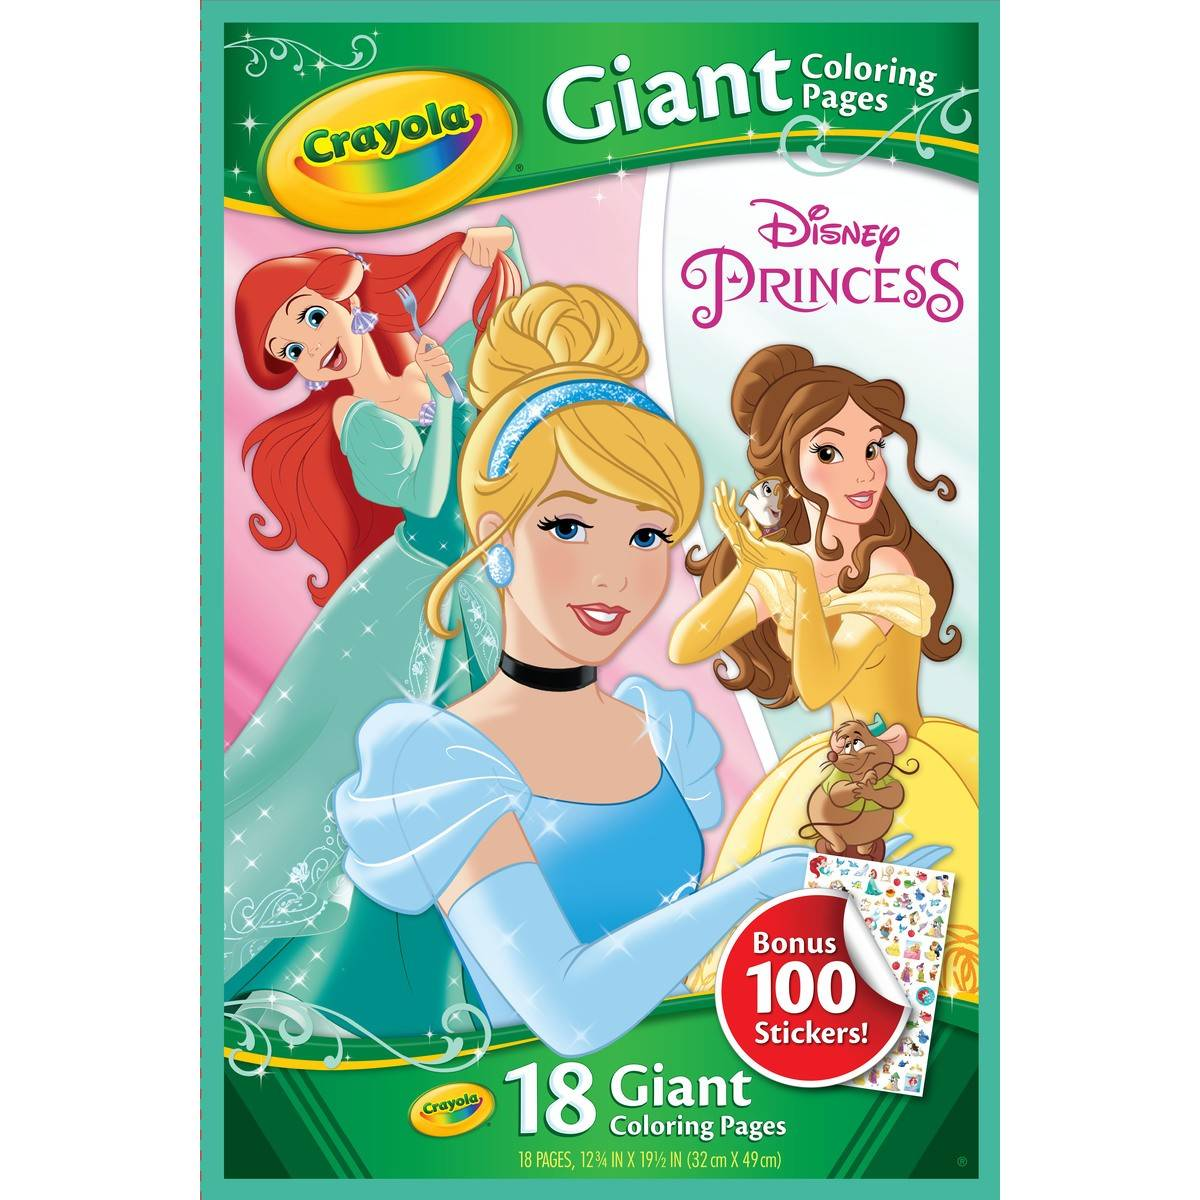 Big W Stickers Crayola Giant Colouring Pages Disney Princess